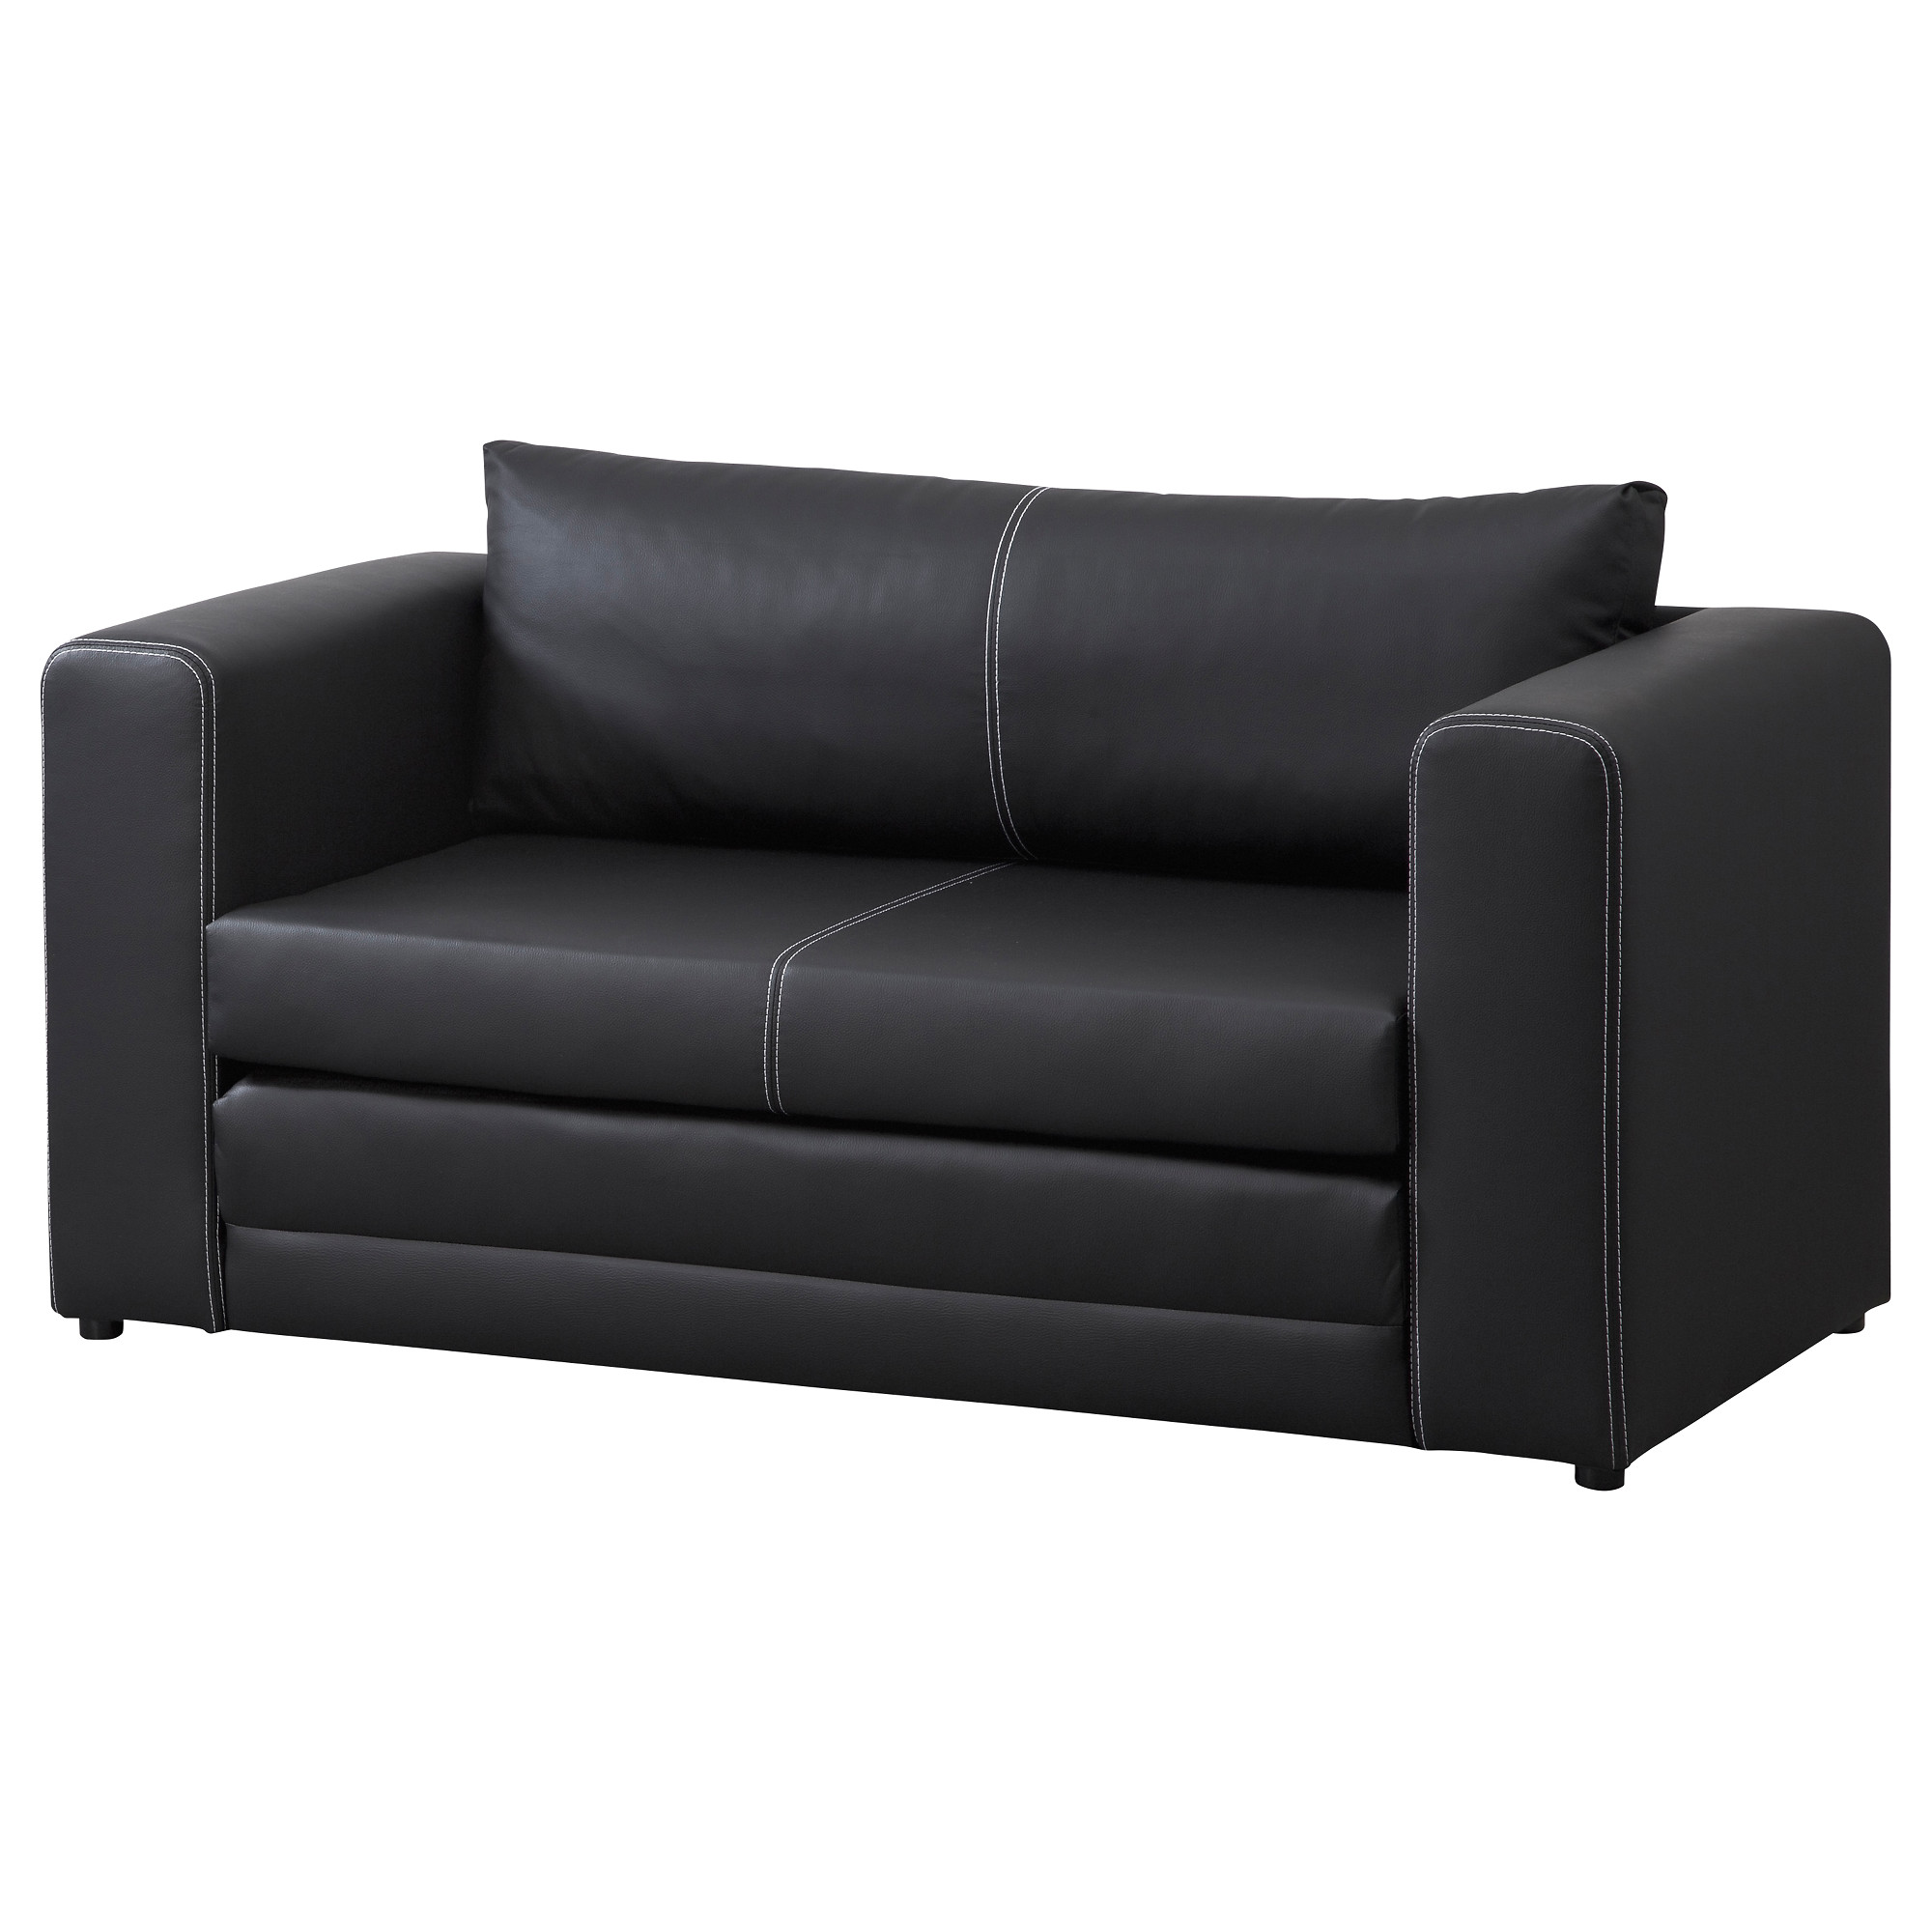 Ikea Sofa Bed Sale Dubai